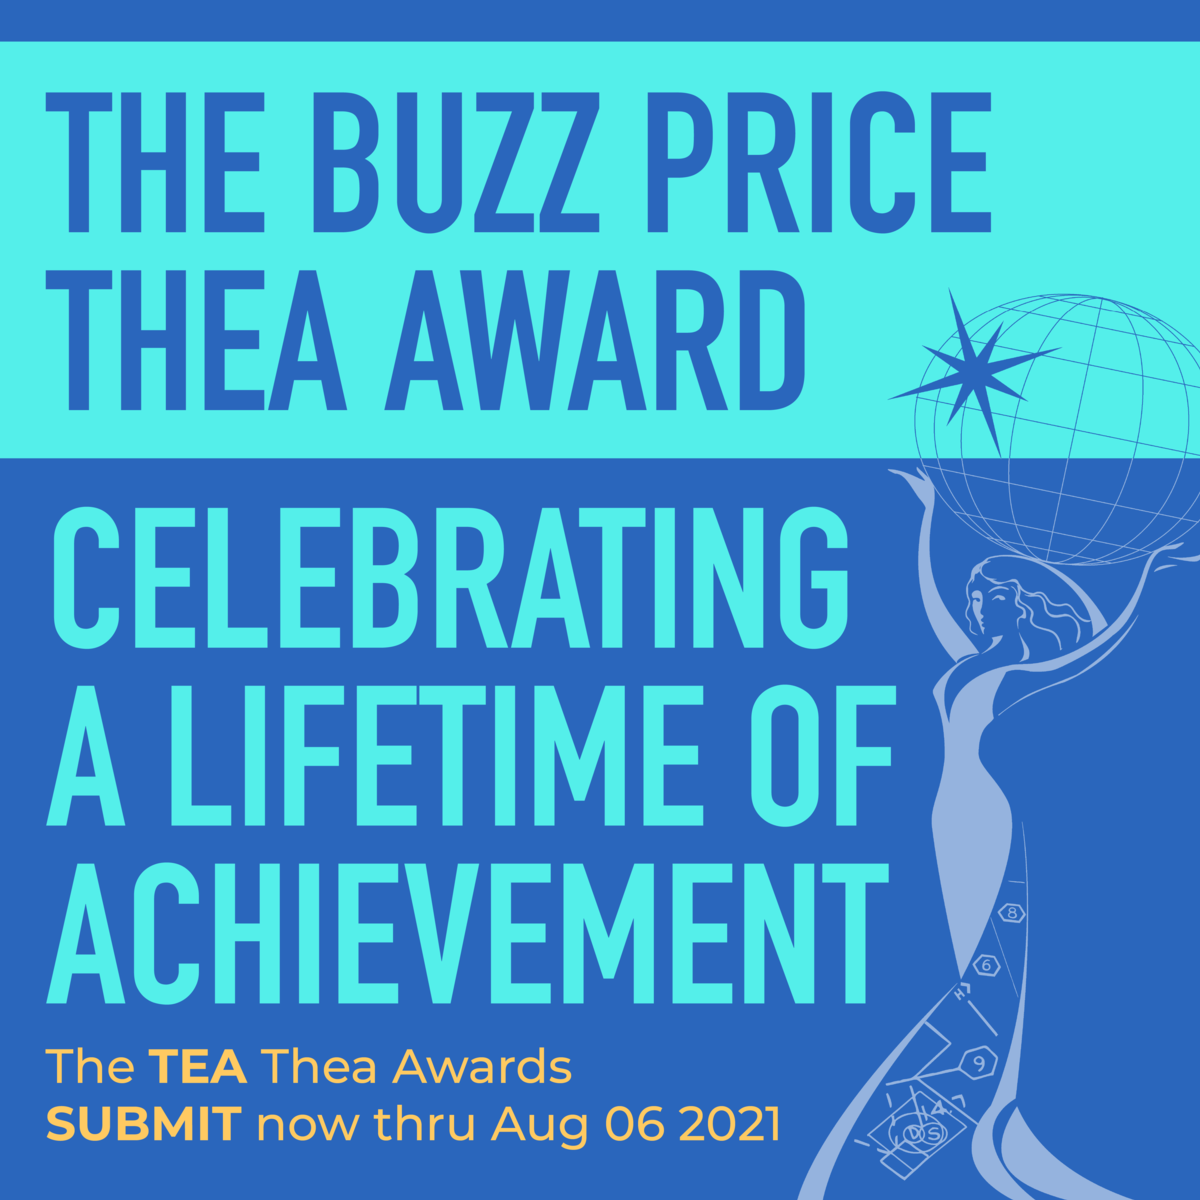 The Buzz Price Thea Award! Submissions due soon - by August 06, 2021!